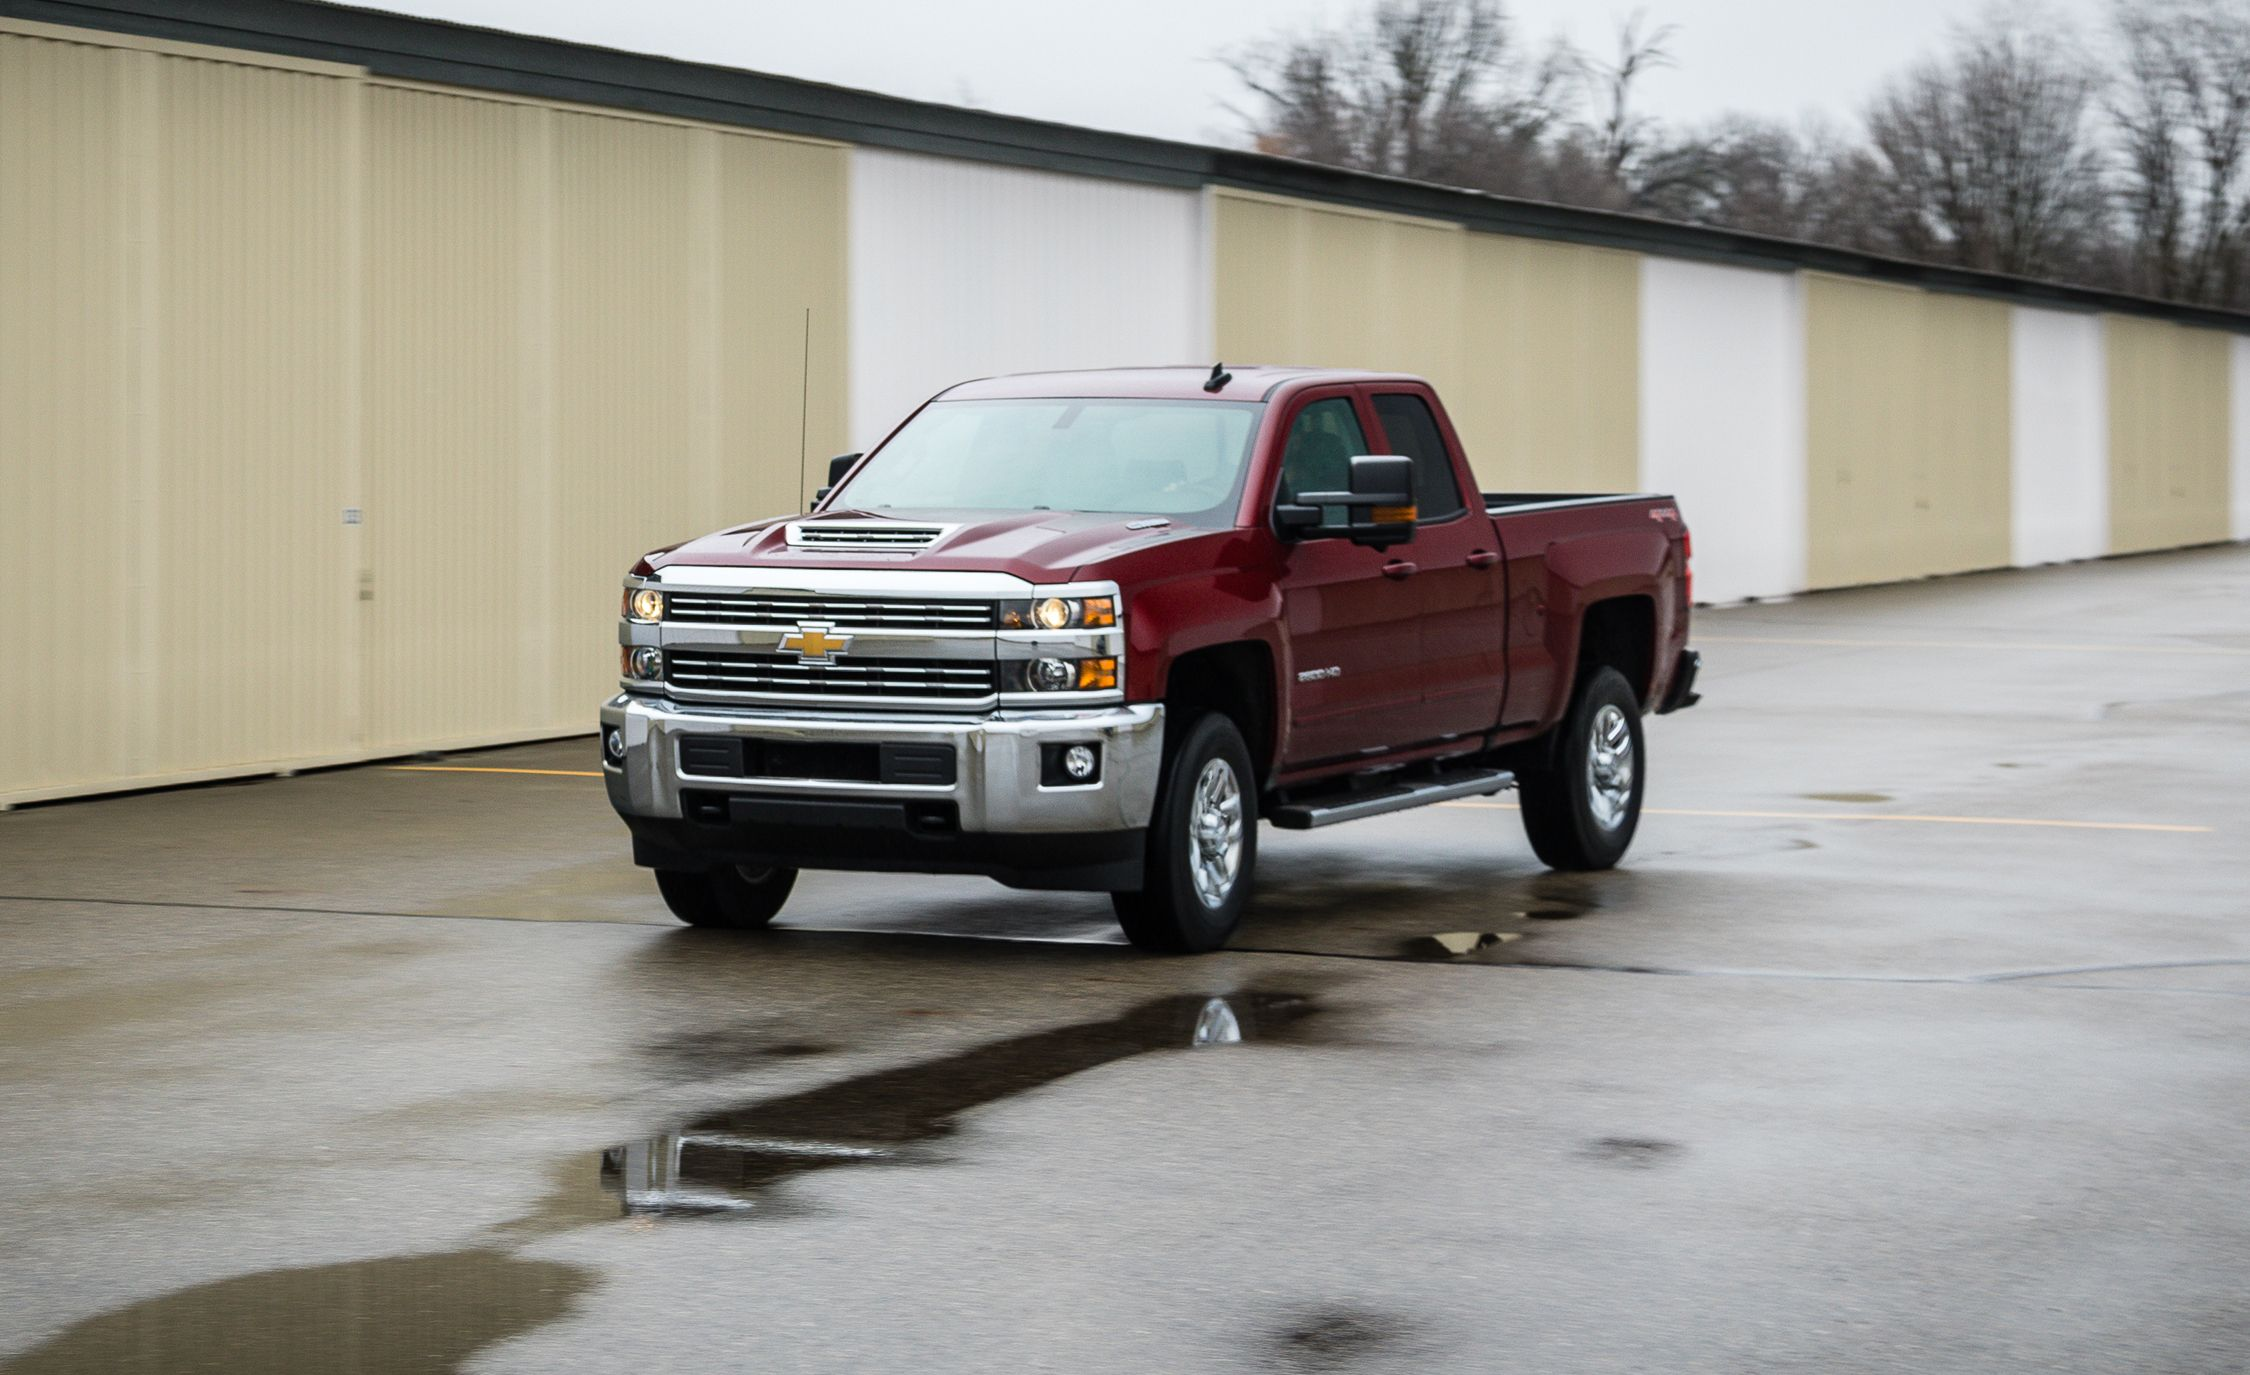 2020 Chevrolet Silverado 2500hd Reviews Chevrolet Silverado 2500hd